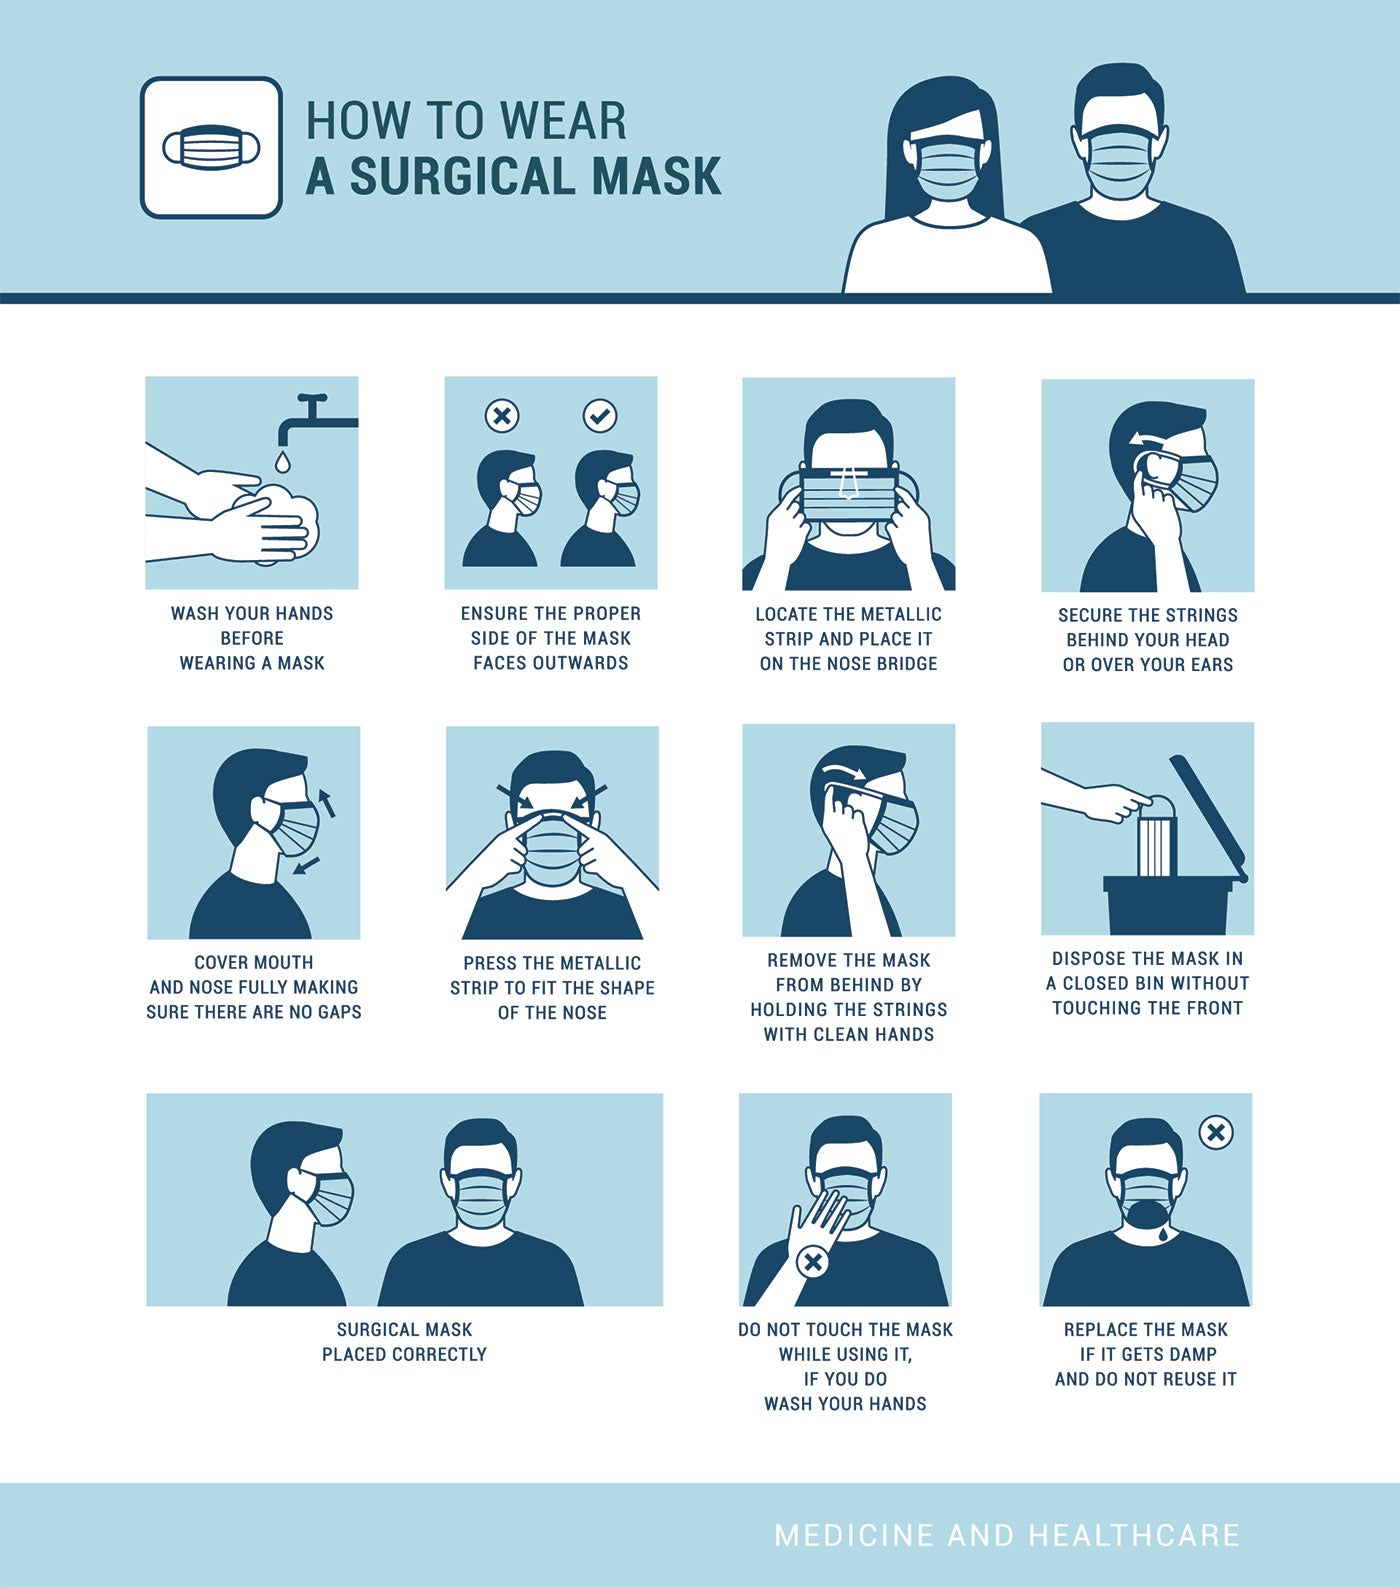 How to wear a surgical mask and remove it safely